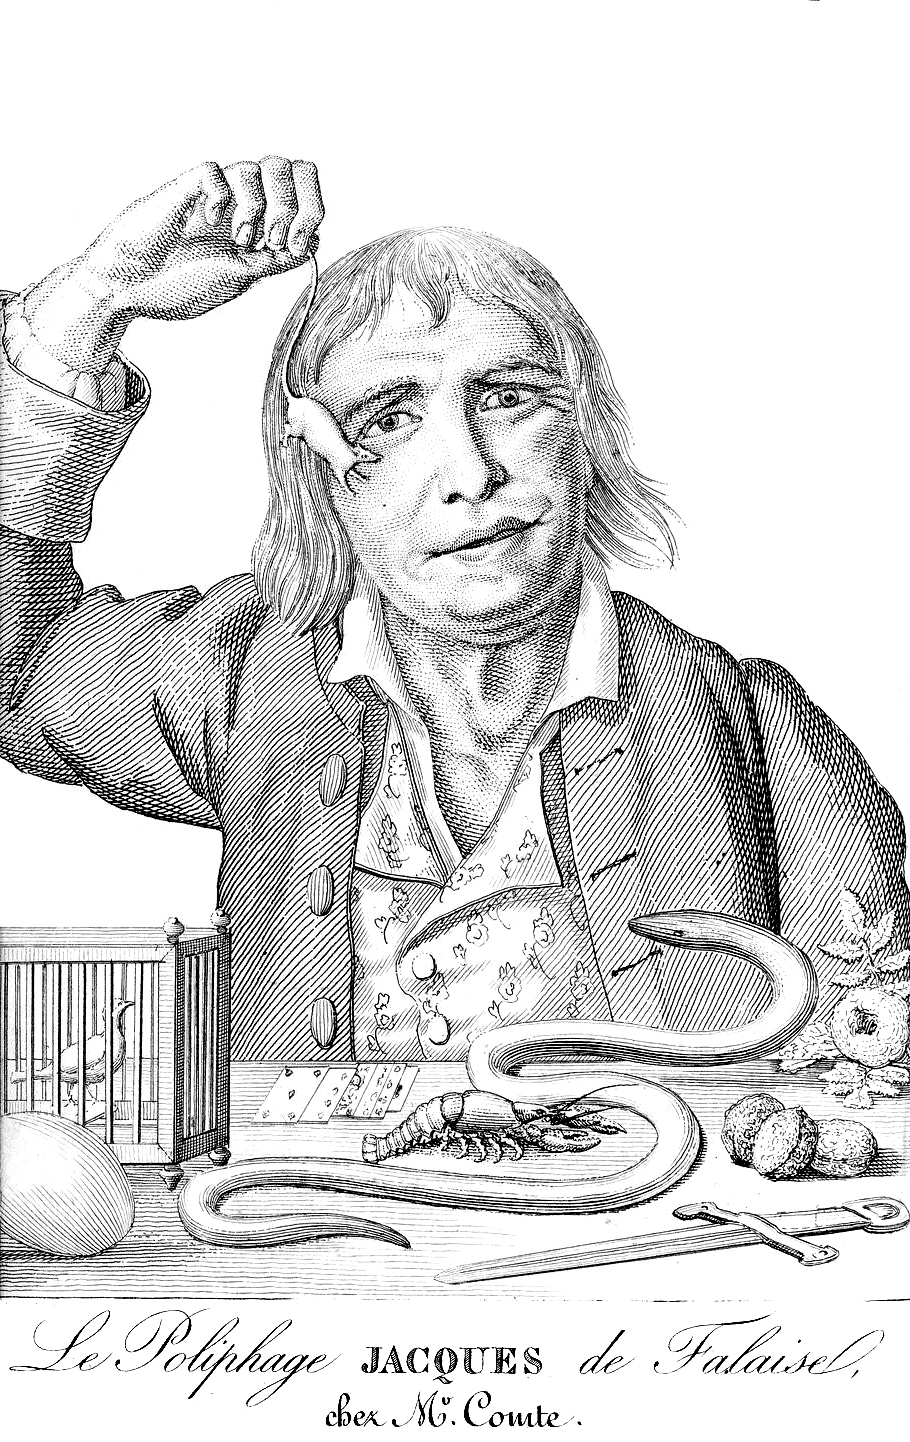 The Medical Mystery Of Tarrare, A Cannibalistic French Spy